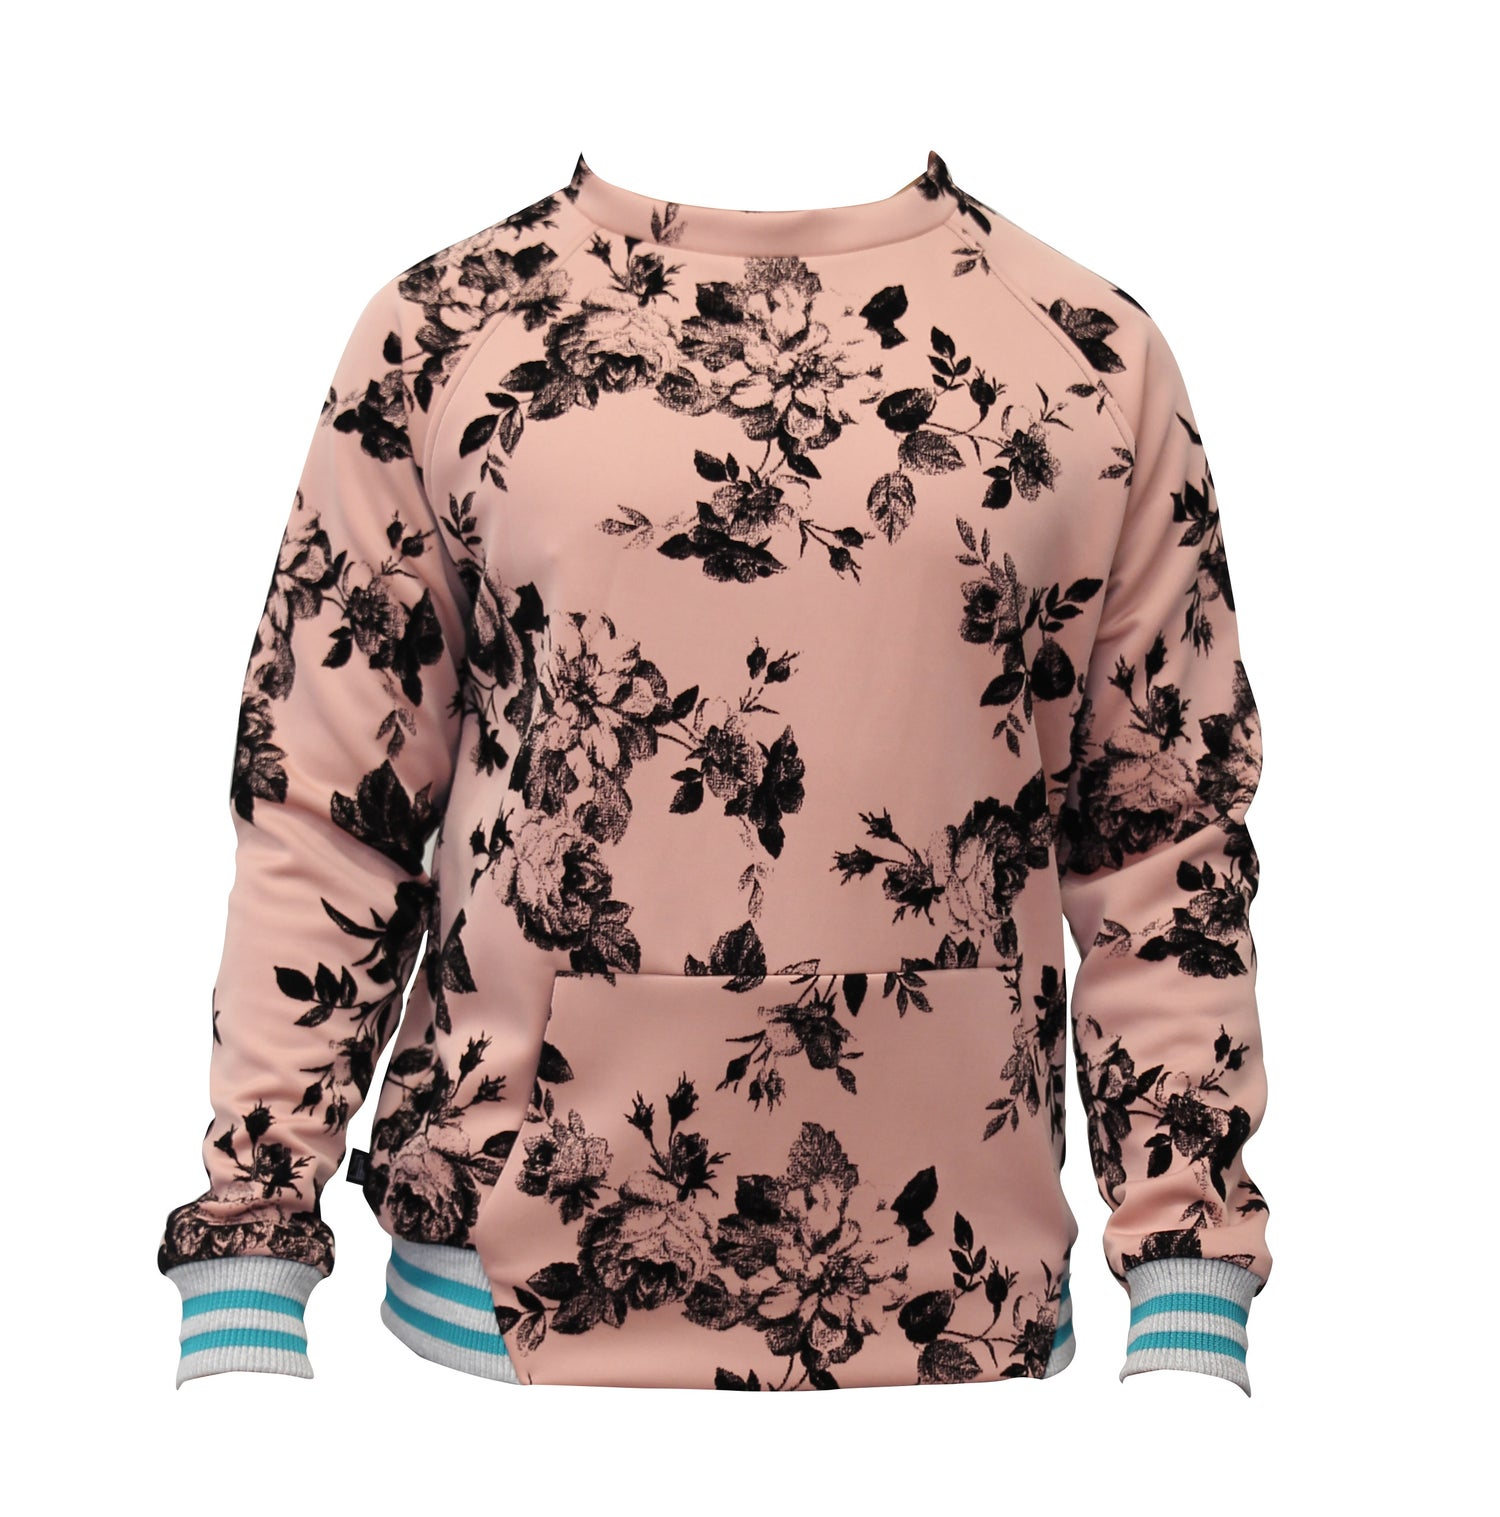 Image of Flocked Scuba Sweatshirt